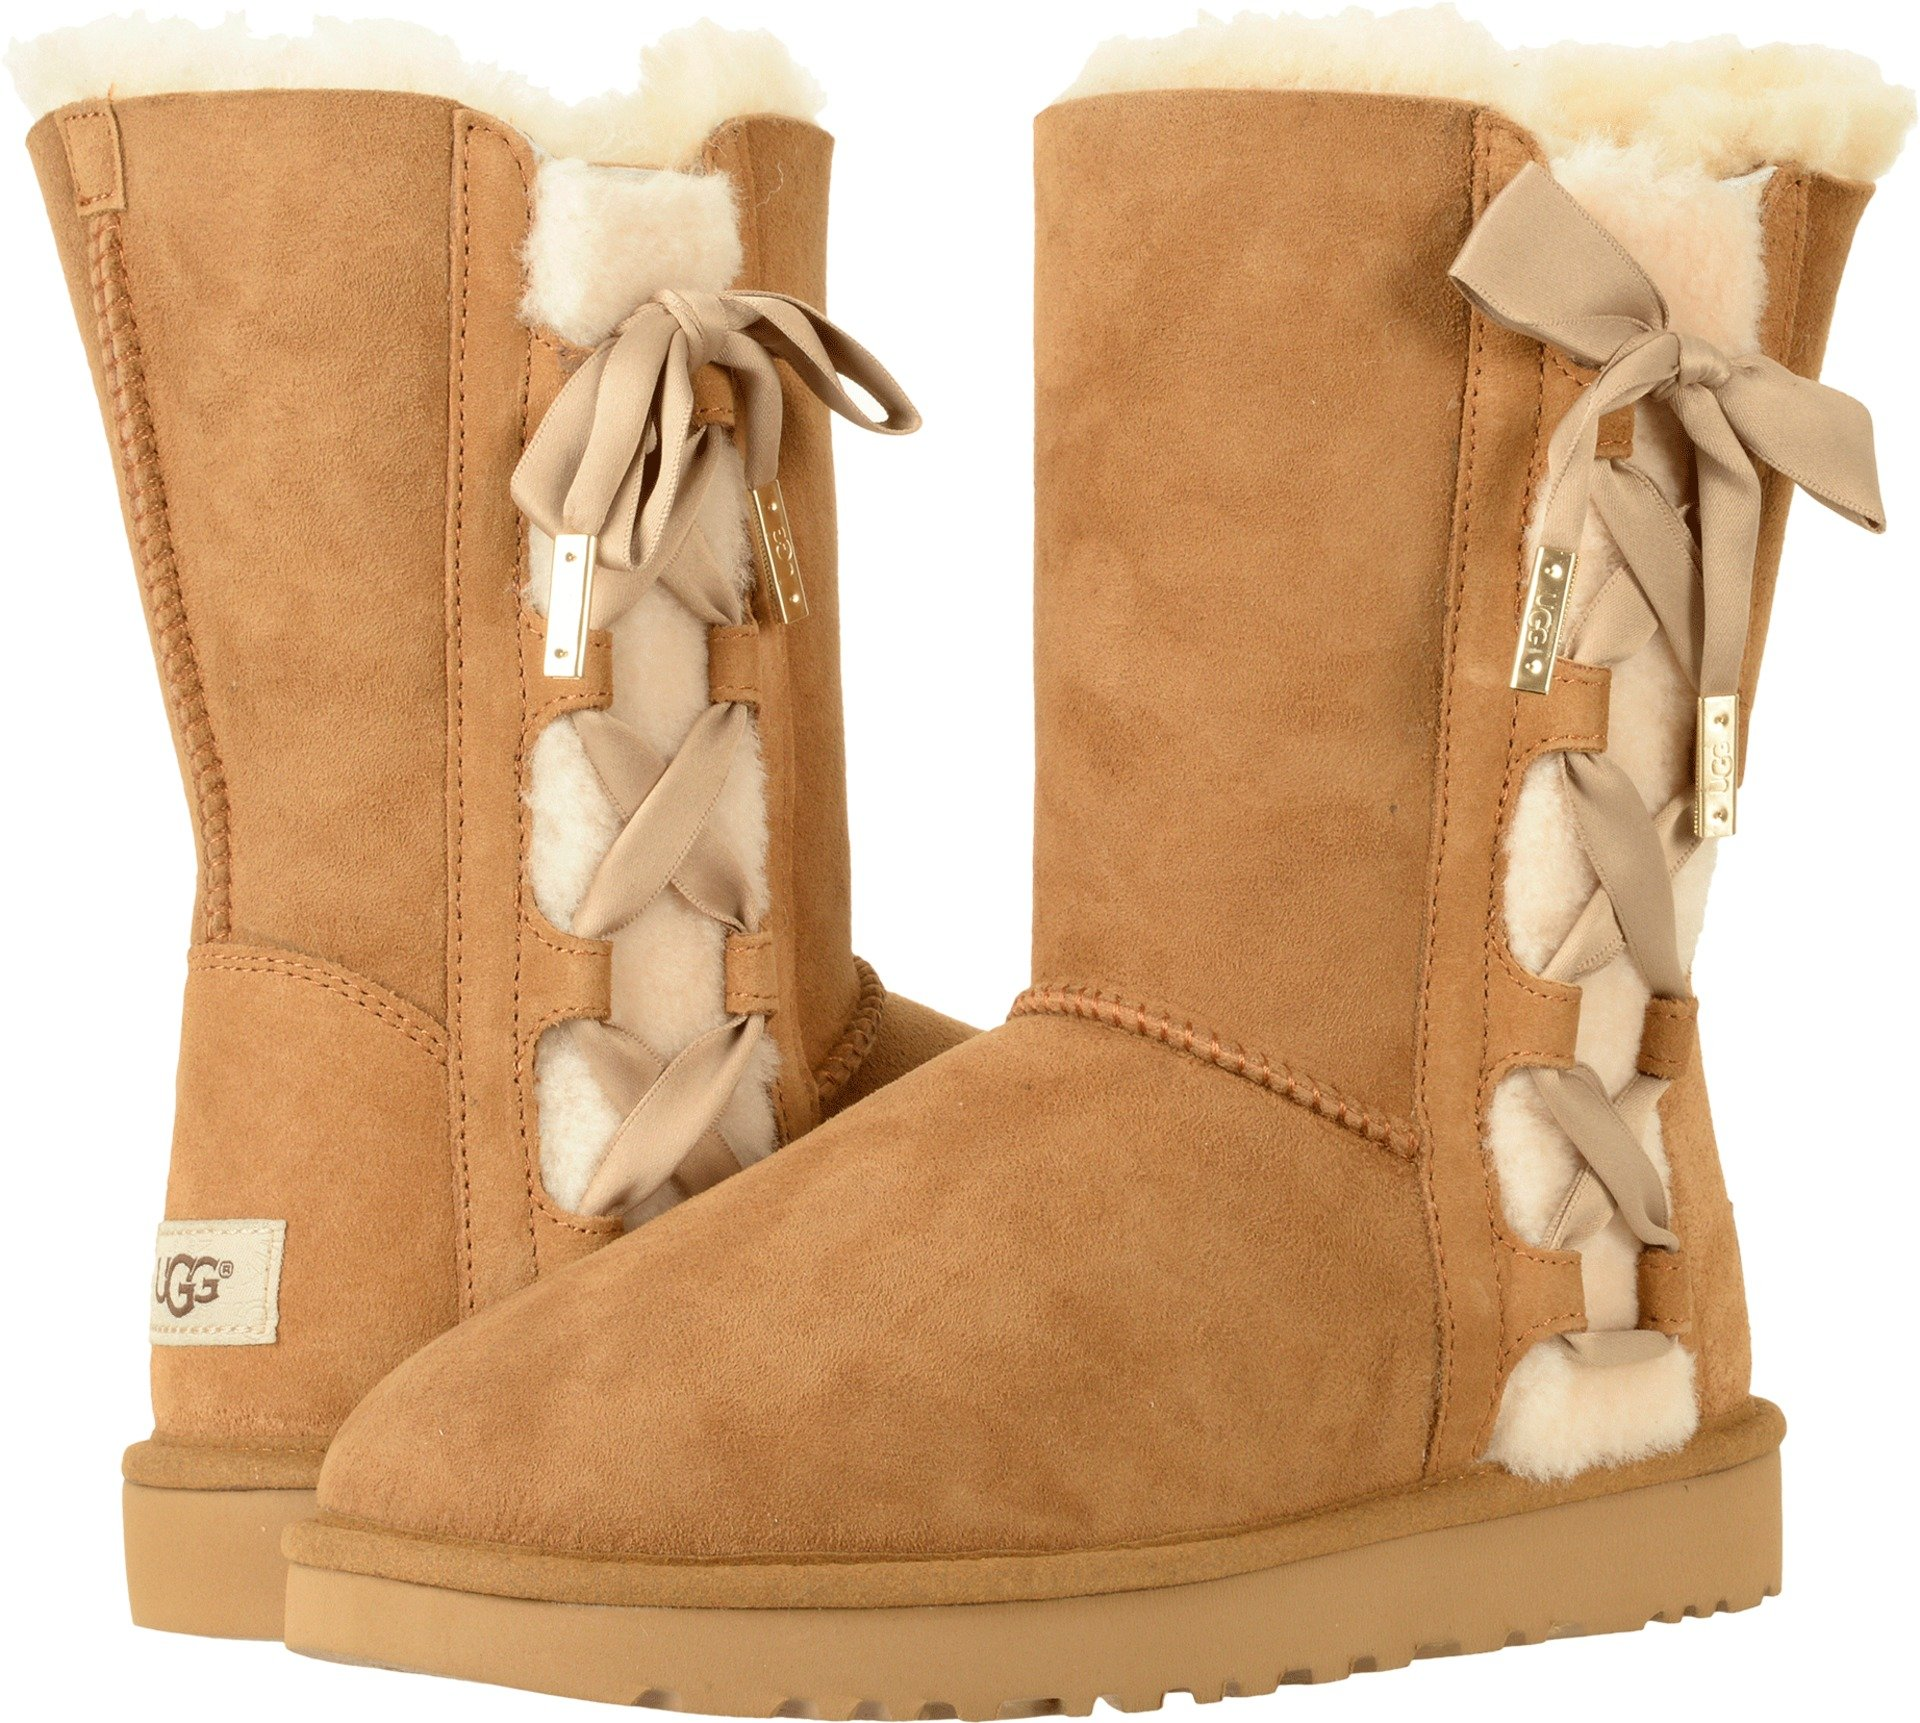 UGG Women's Pala Winter Boot, Chestnut, 7 M US